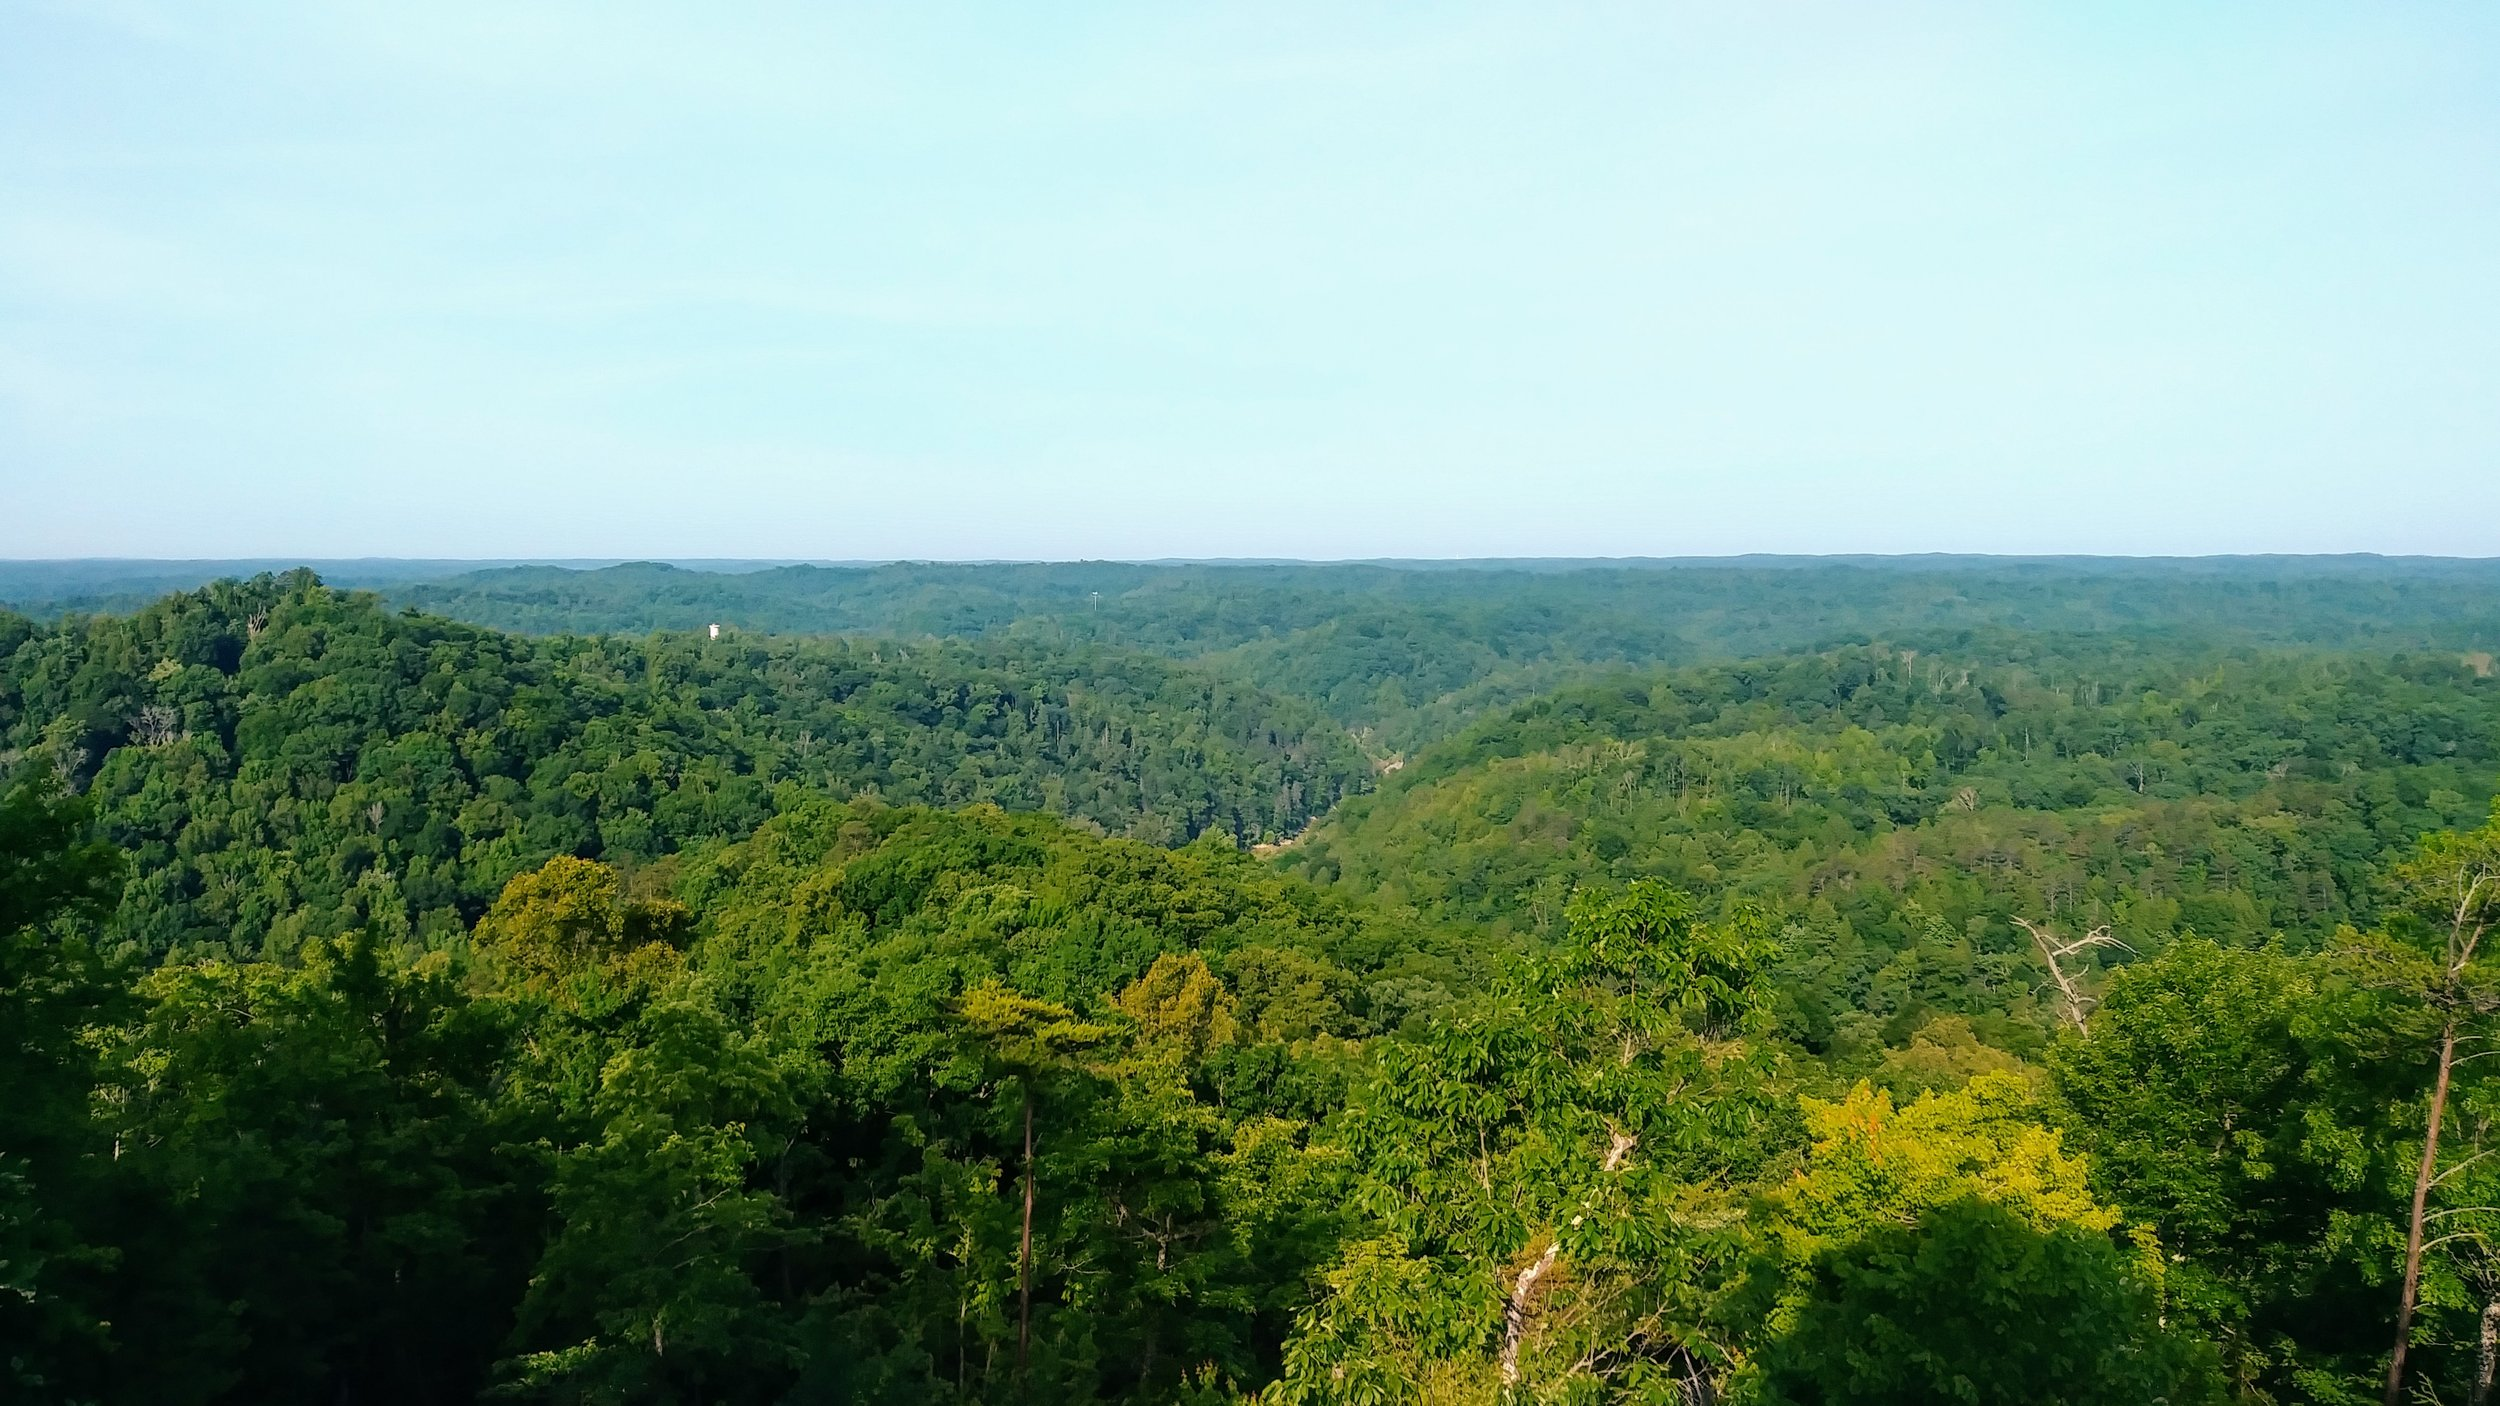 The view of Cumberland River Gorge from Pinnacle Knob Fire Tower